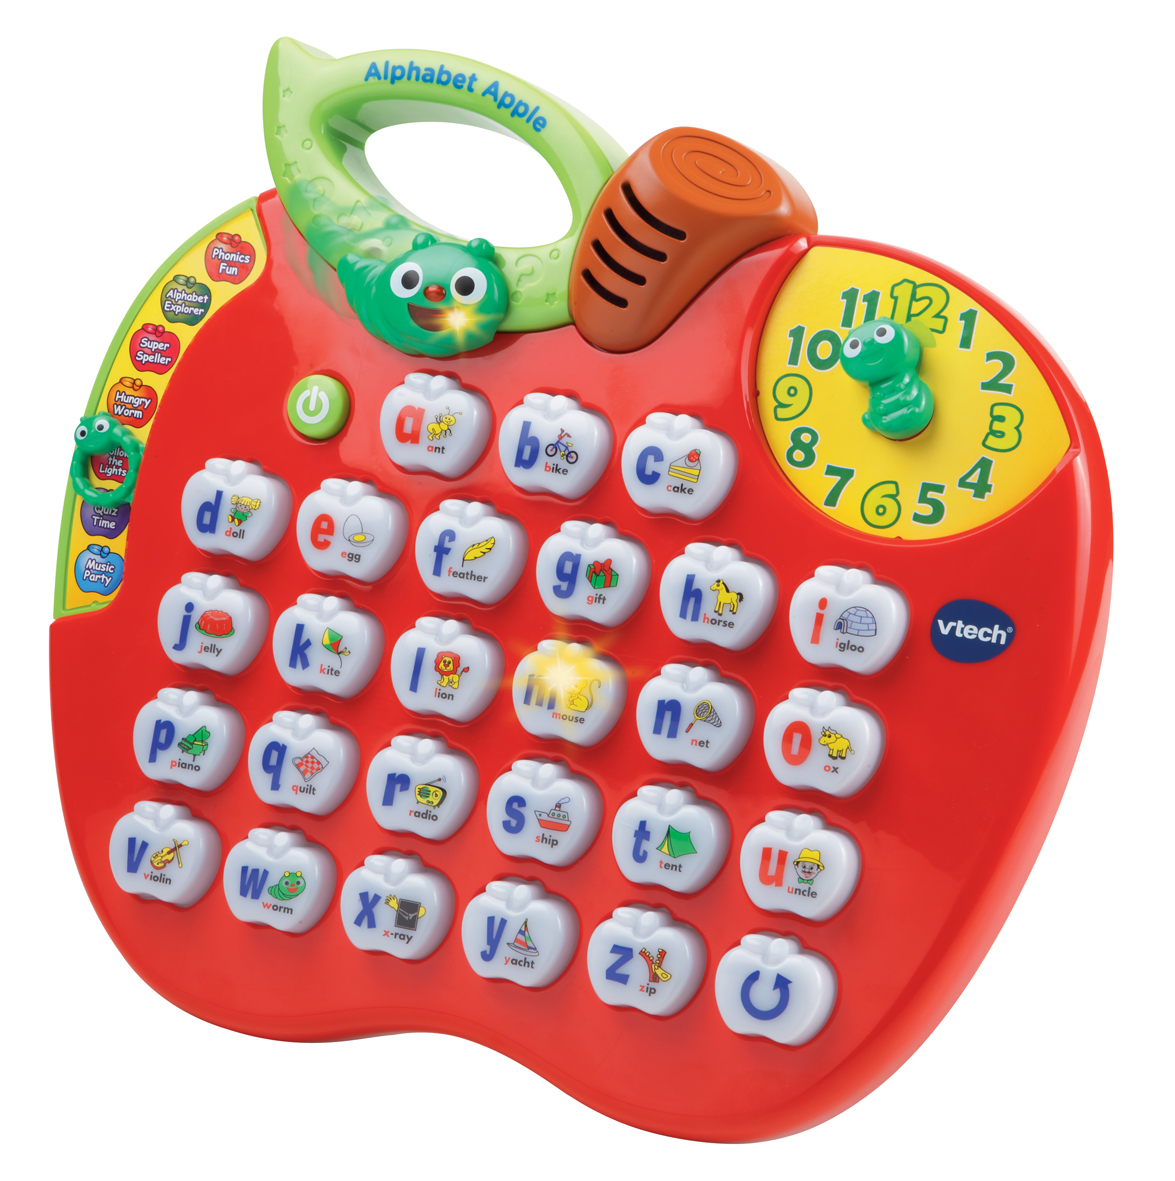 Toys Age 2 5 : Vtech childrens educational interactive light up alphabet